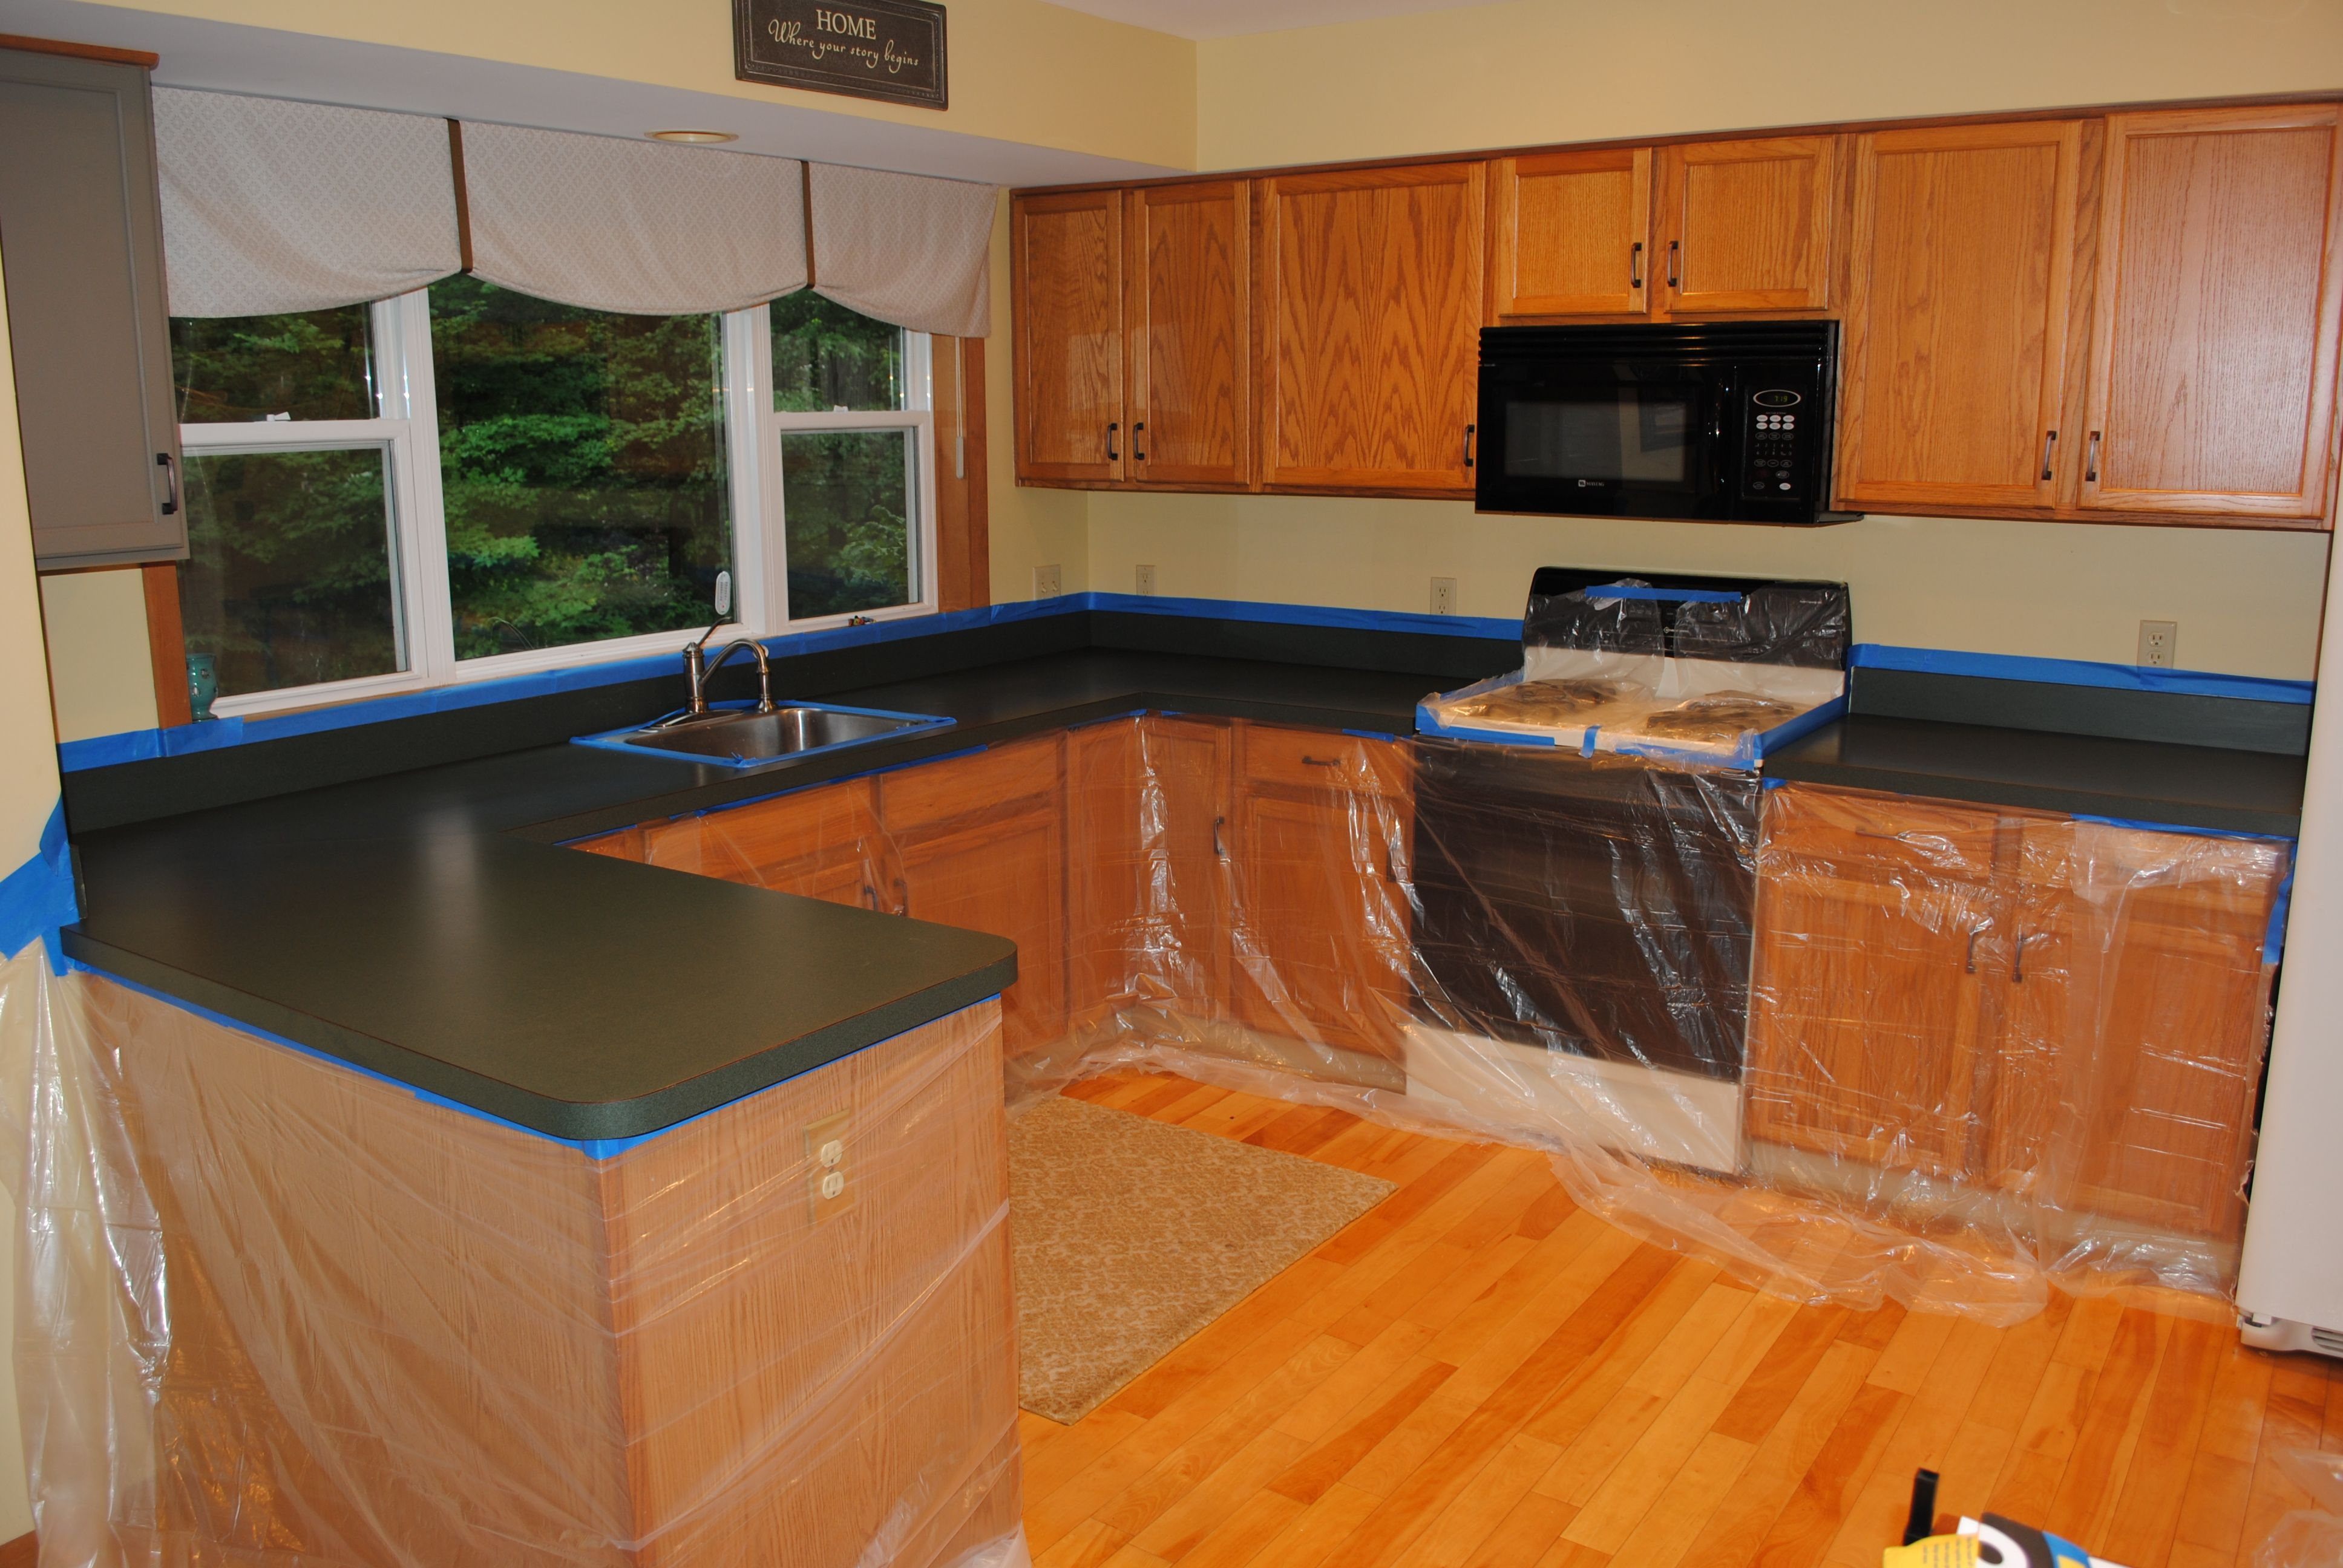 Kitchen Countertop Reveal Using The Rust Oluem Countertop